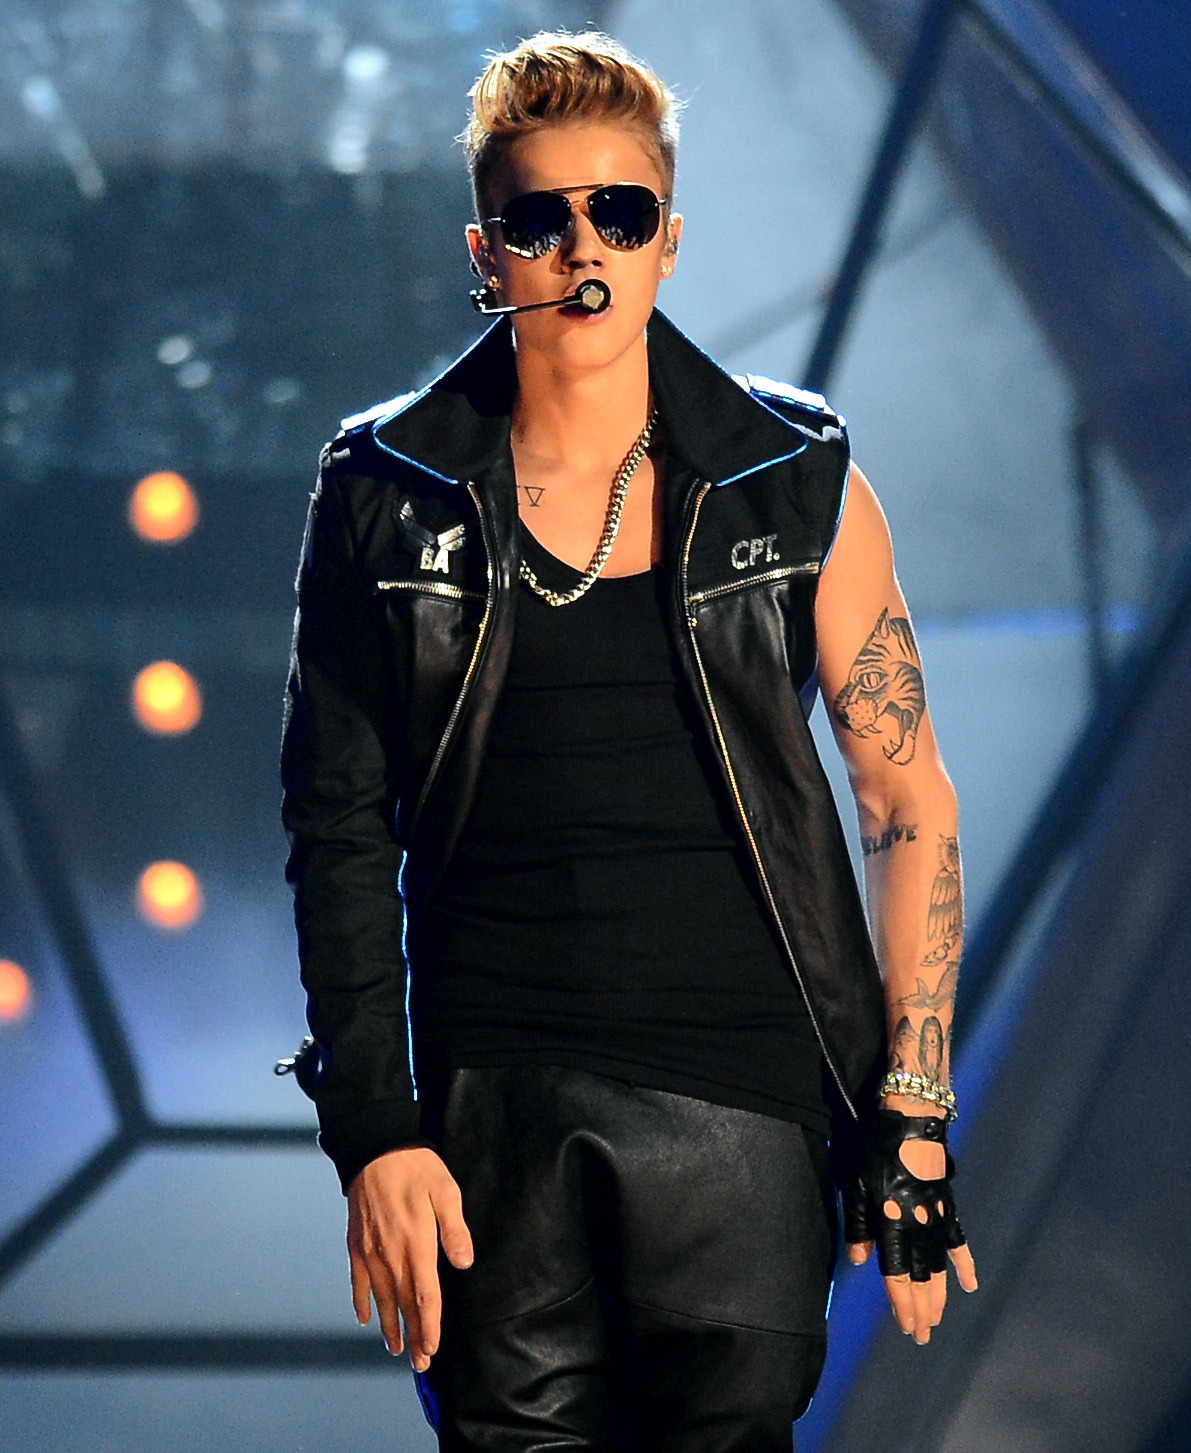 bieber-news:  Justin performing Take You at the Billboard Music Awards!